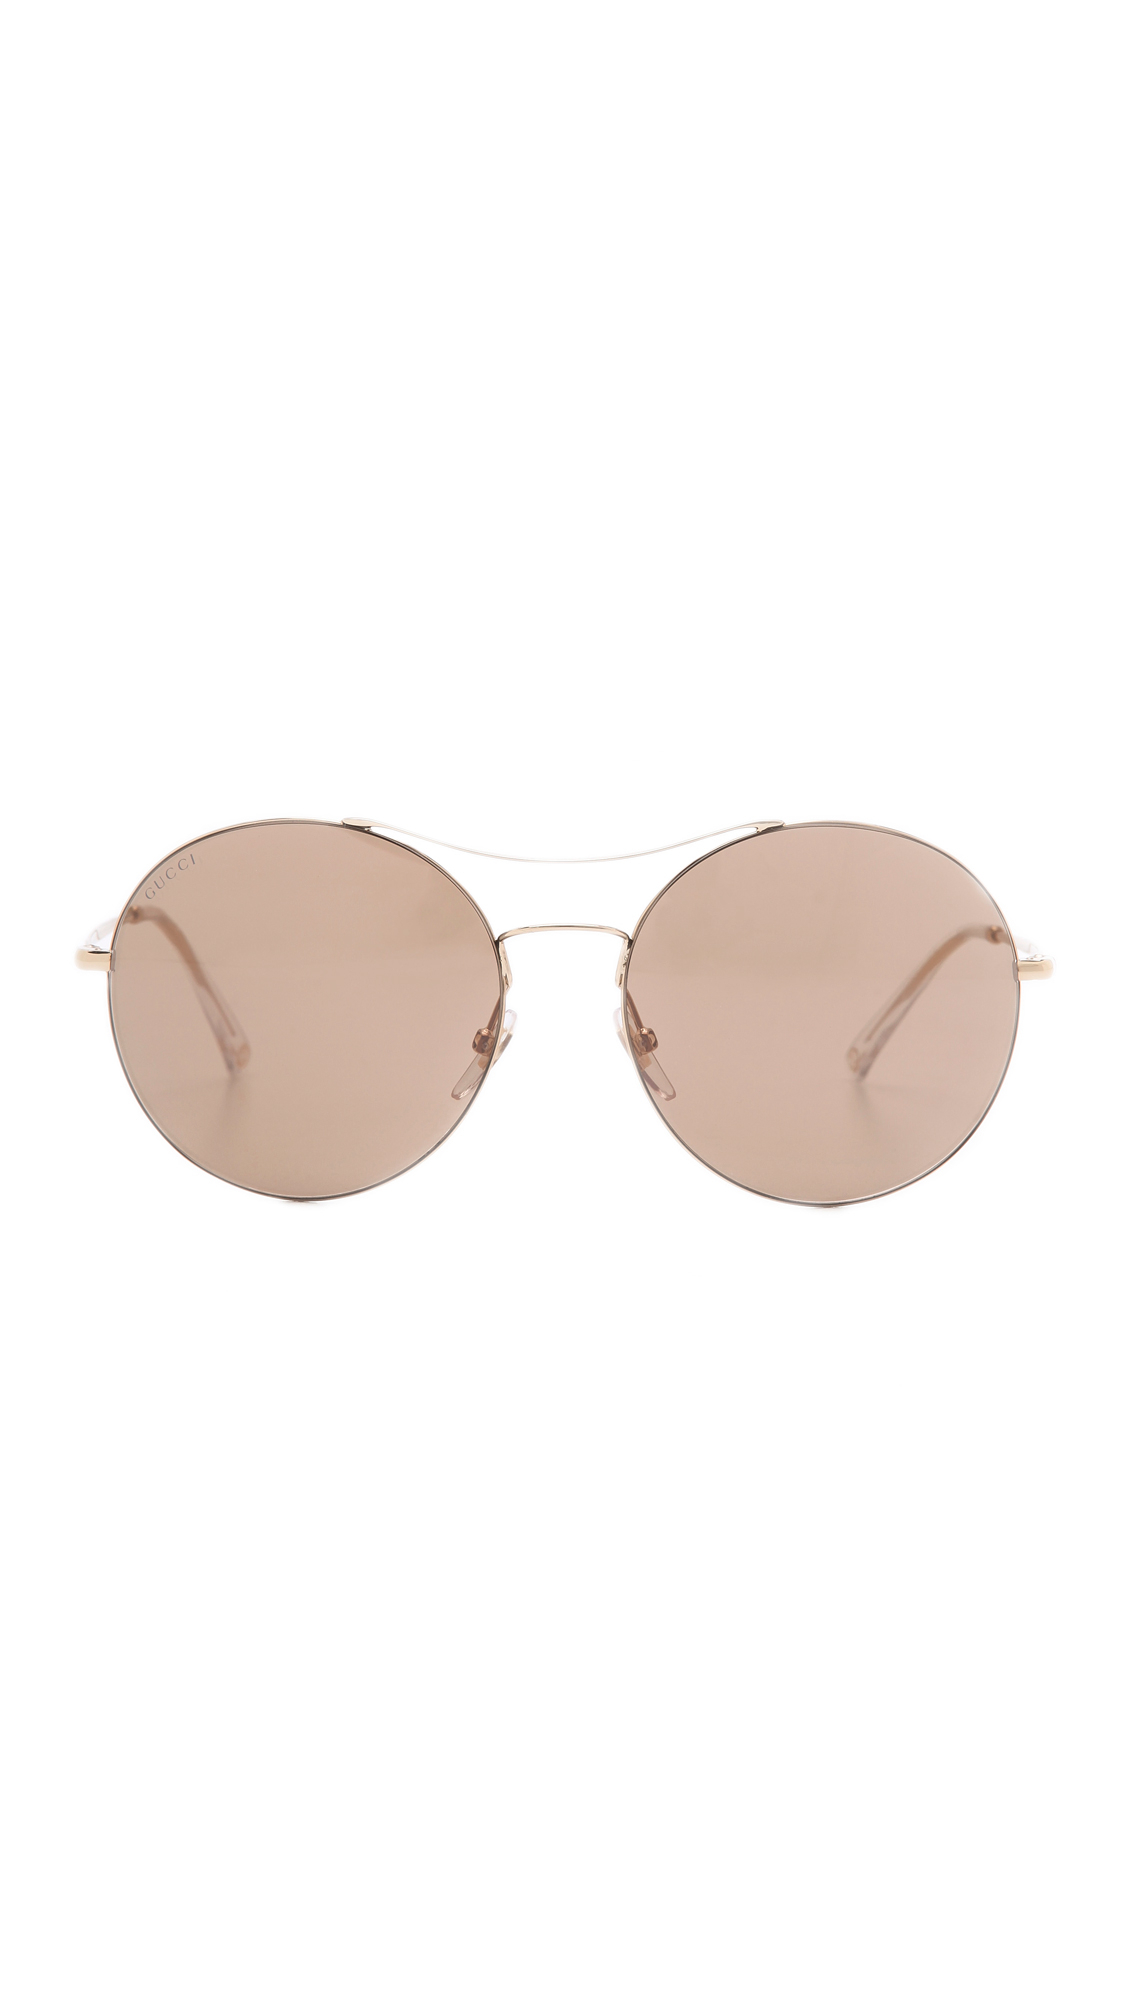 1bc2e7e5e5 Gucci Round Aviator Sunglasses - Gold Brown Mirror in Metallic - Lyst